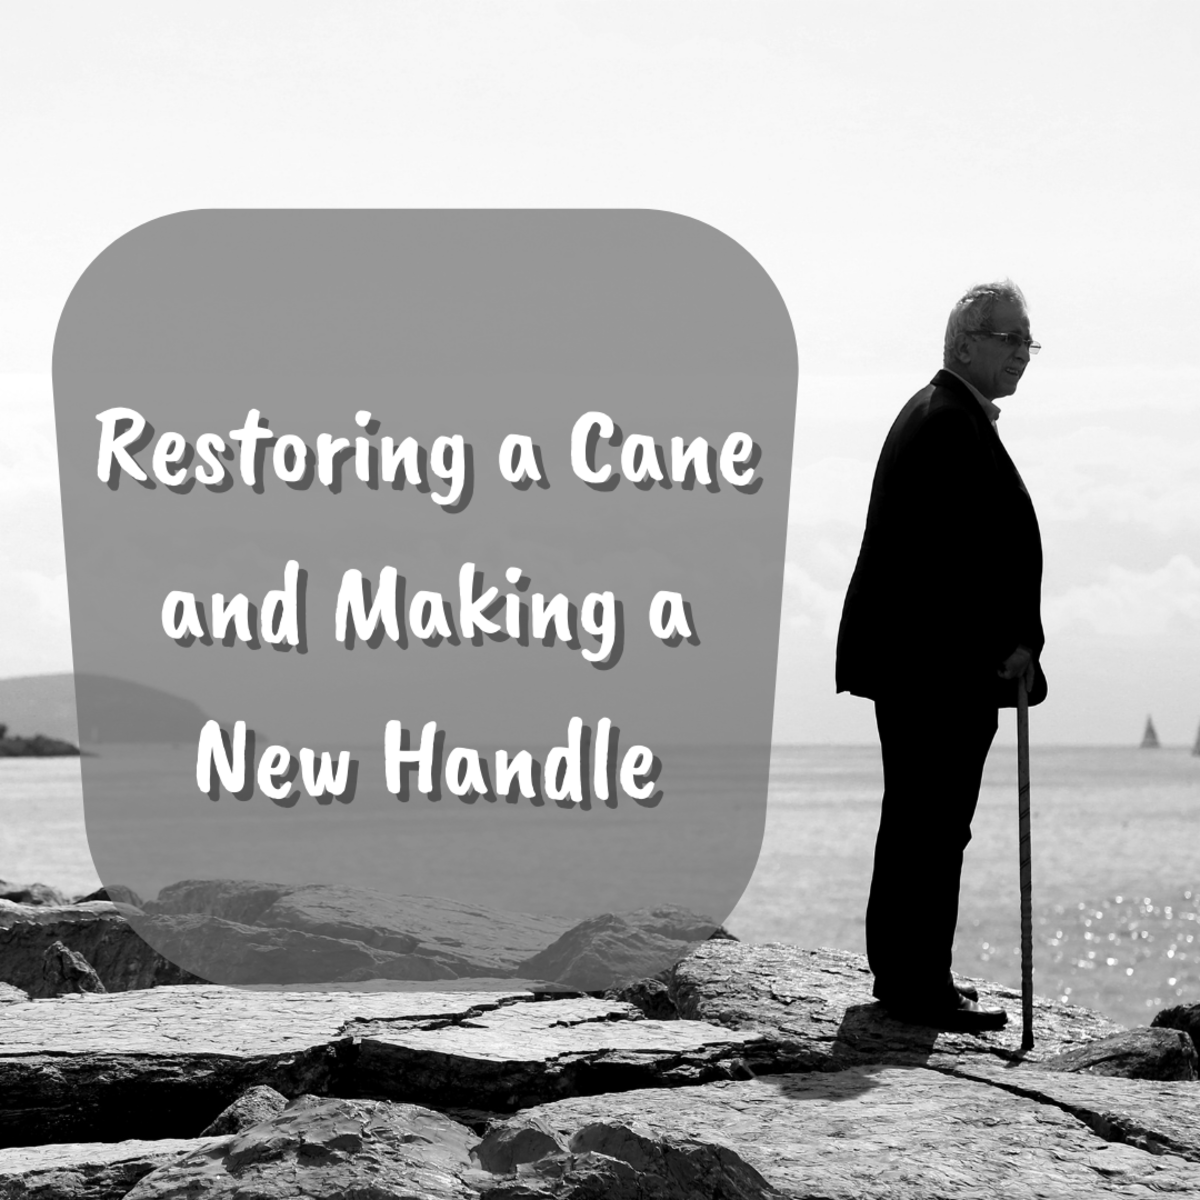 This illustrated step-by-step guide will teach you how to restore your cane and even make a new handle for it.